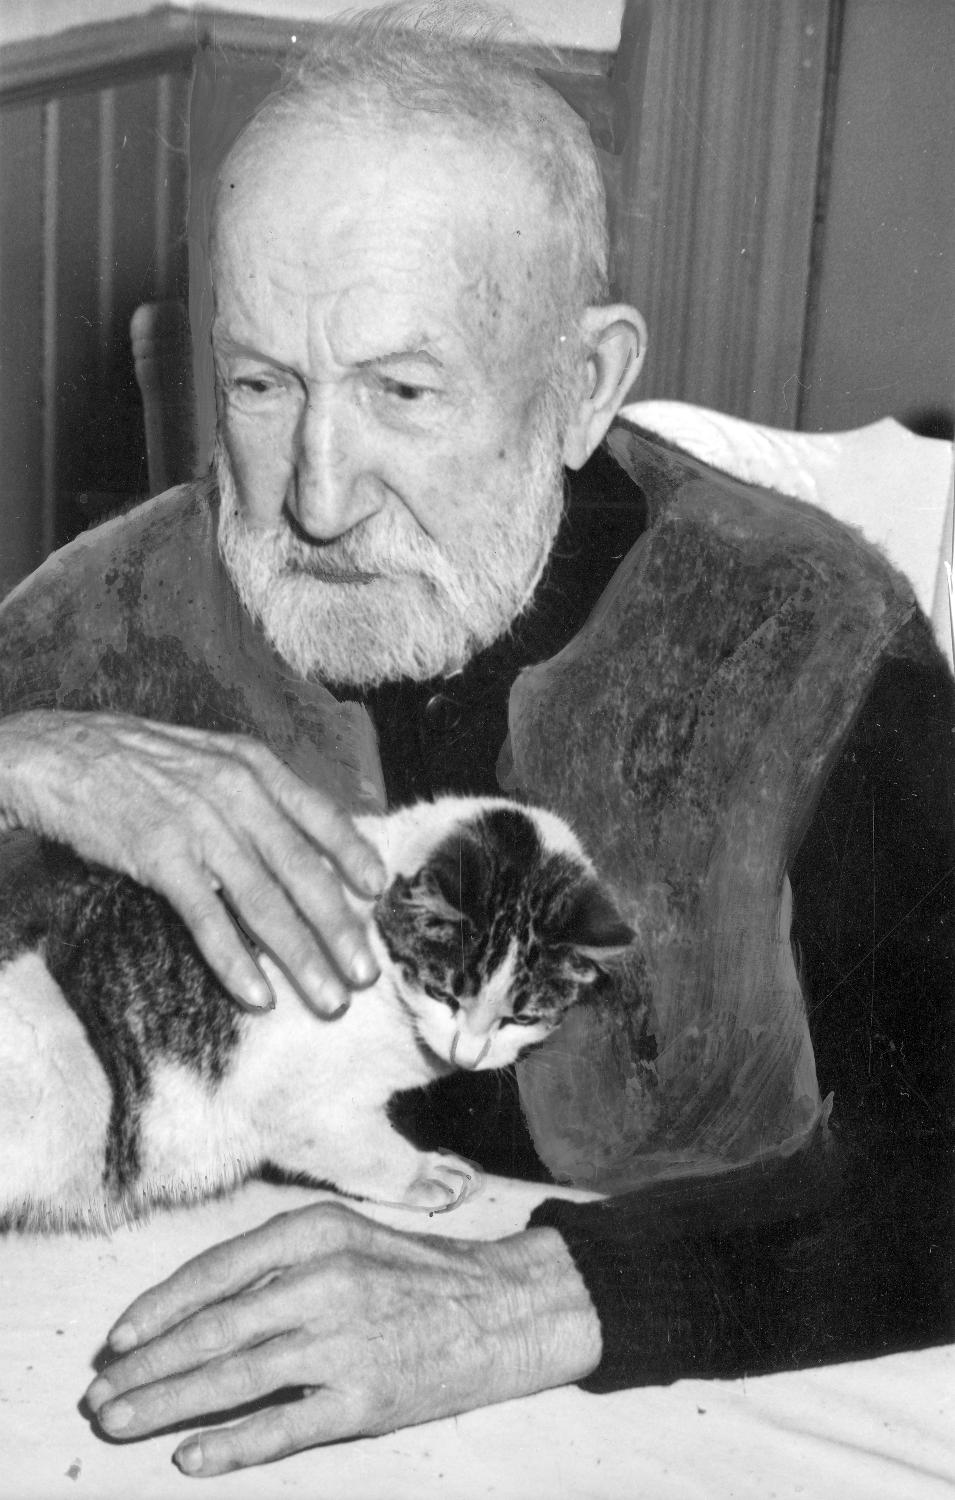 William Sumner and cat, Nov. 29, 1946. Reference code AM54-S4-2-: CVA 371-1838